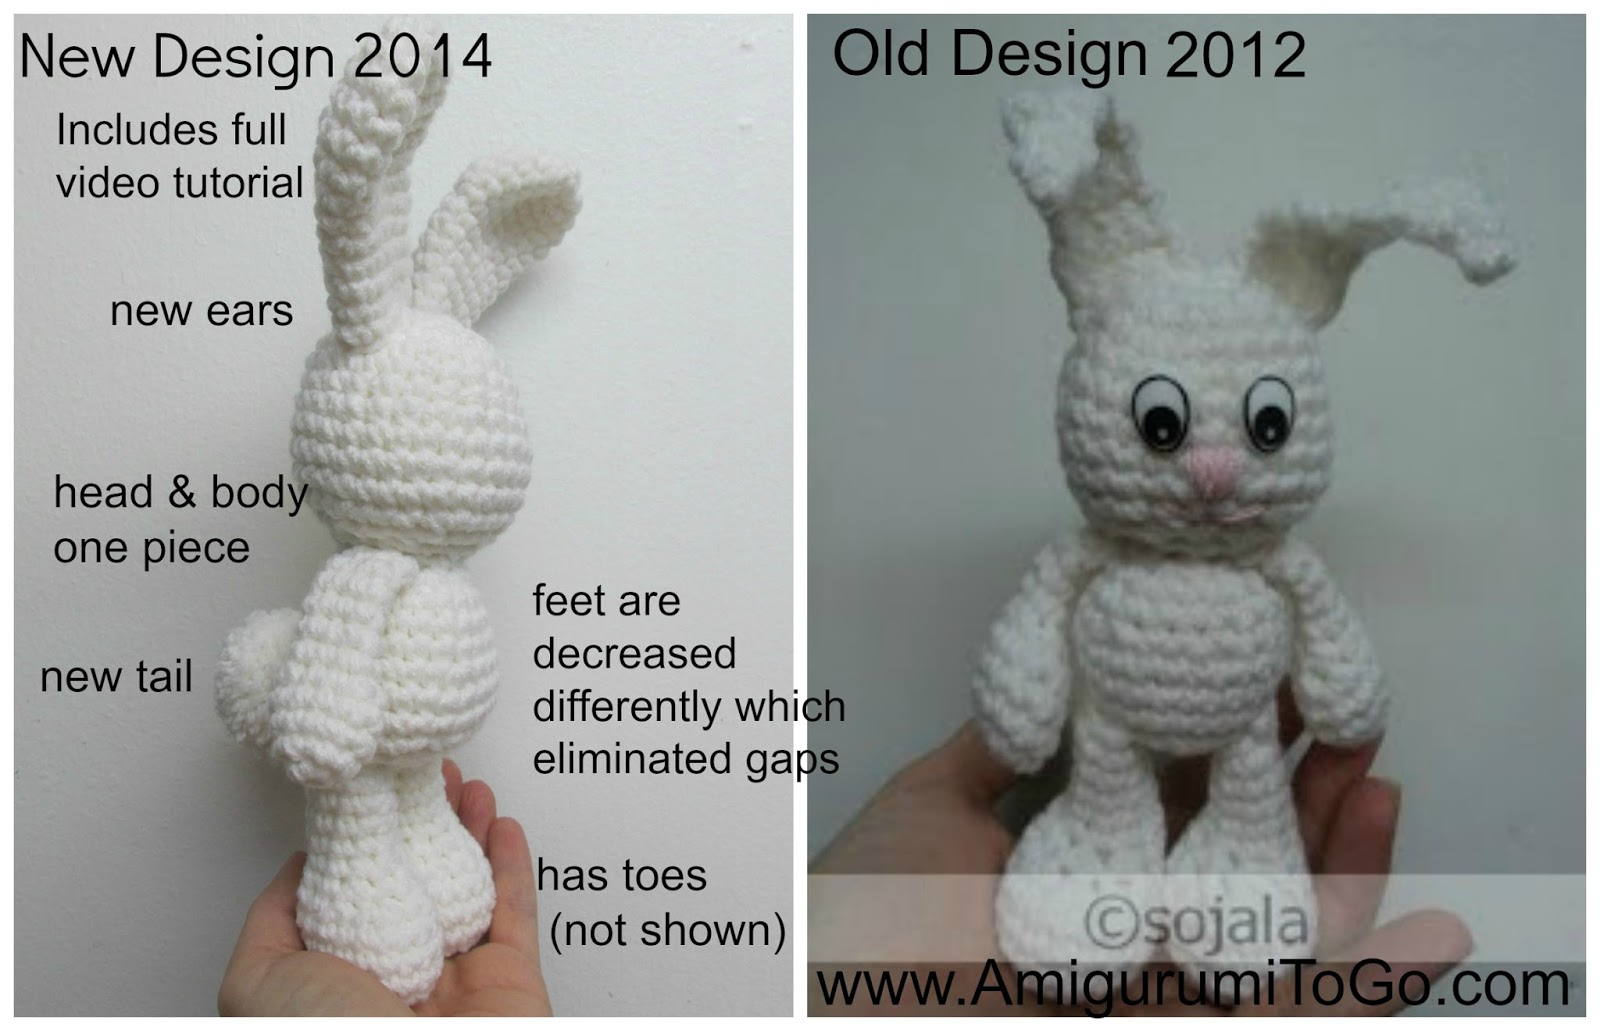 Amigurumi To Go Bigfoot Bunny : Redesigning Little Bigfoots ~ Amigurumi To Go